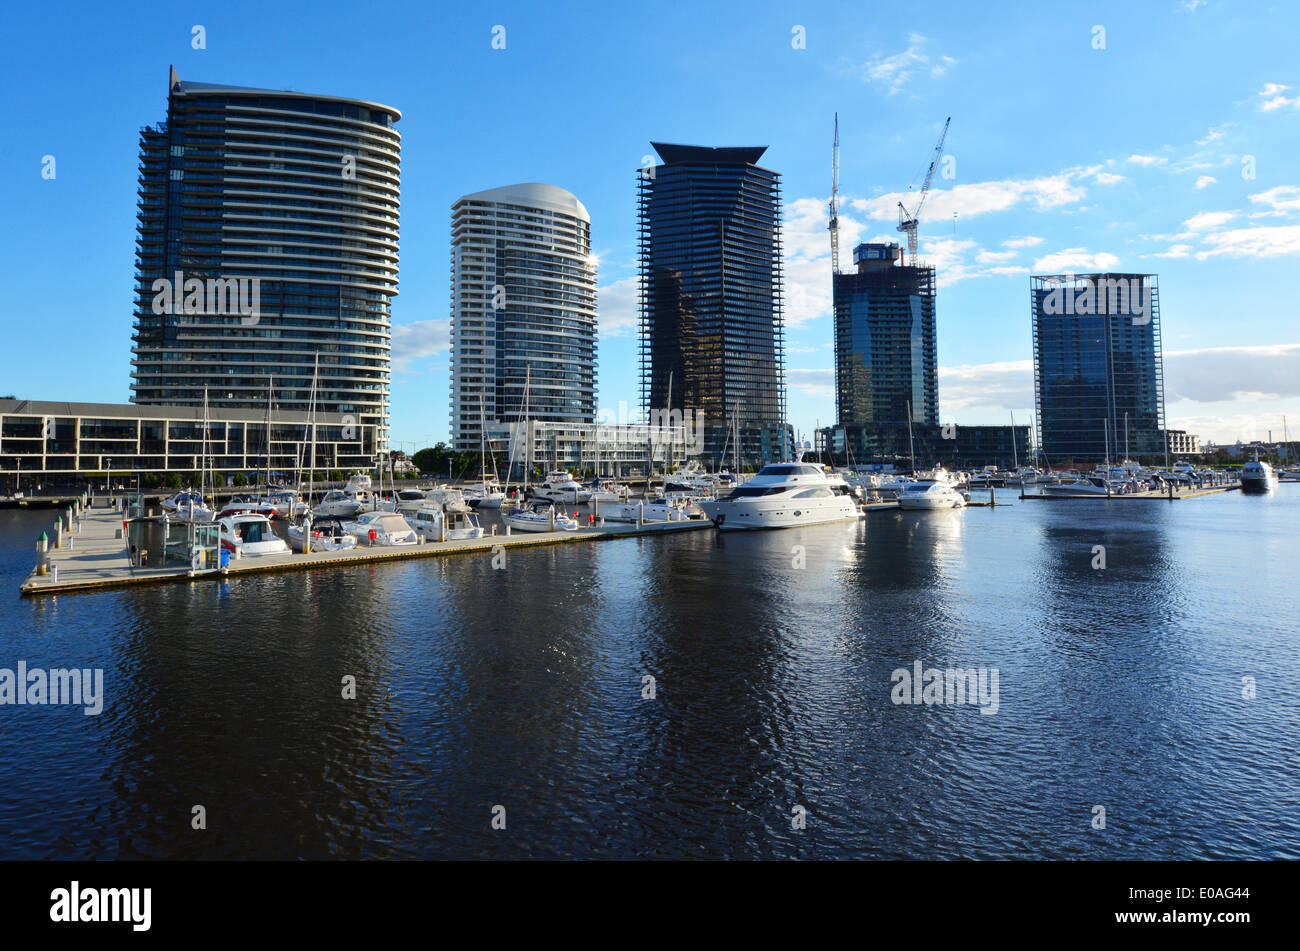 New buildings rises above the Yarra river in Docklands Melbourne Victoria Australia. - Stock Image